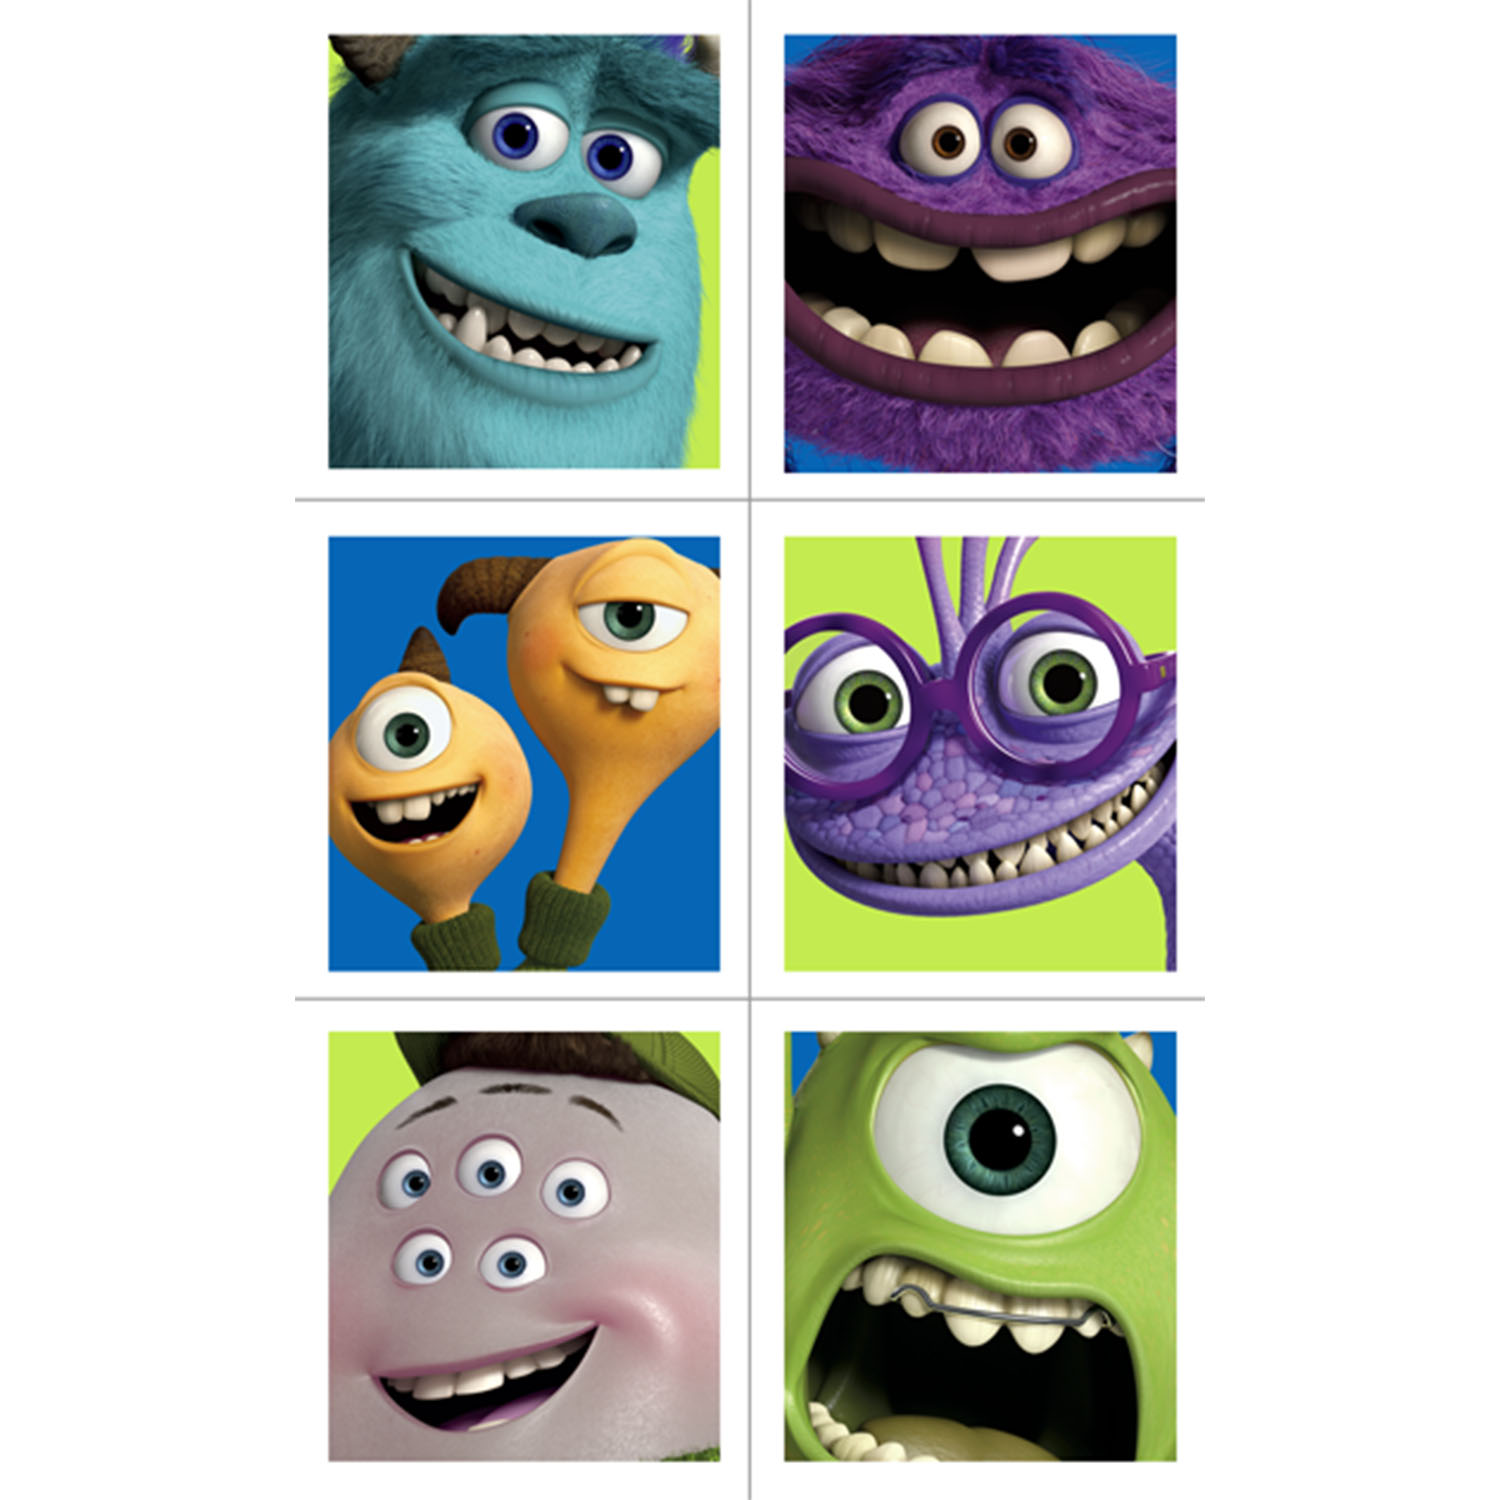 Monsters university party supplies monsters university stickers monsters university party supplies monsters university stickers at toystop voltagebd Images